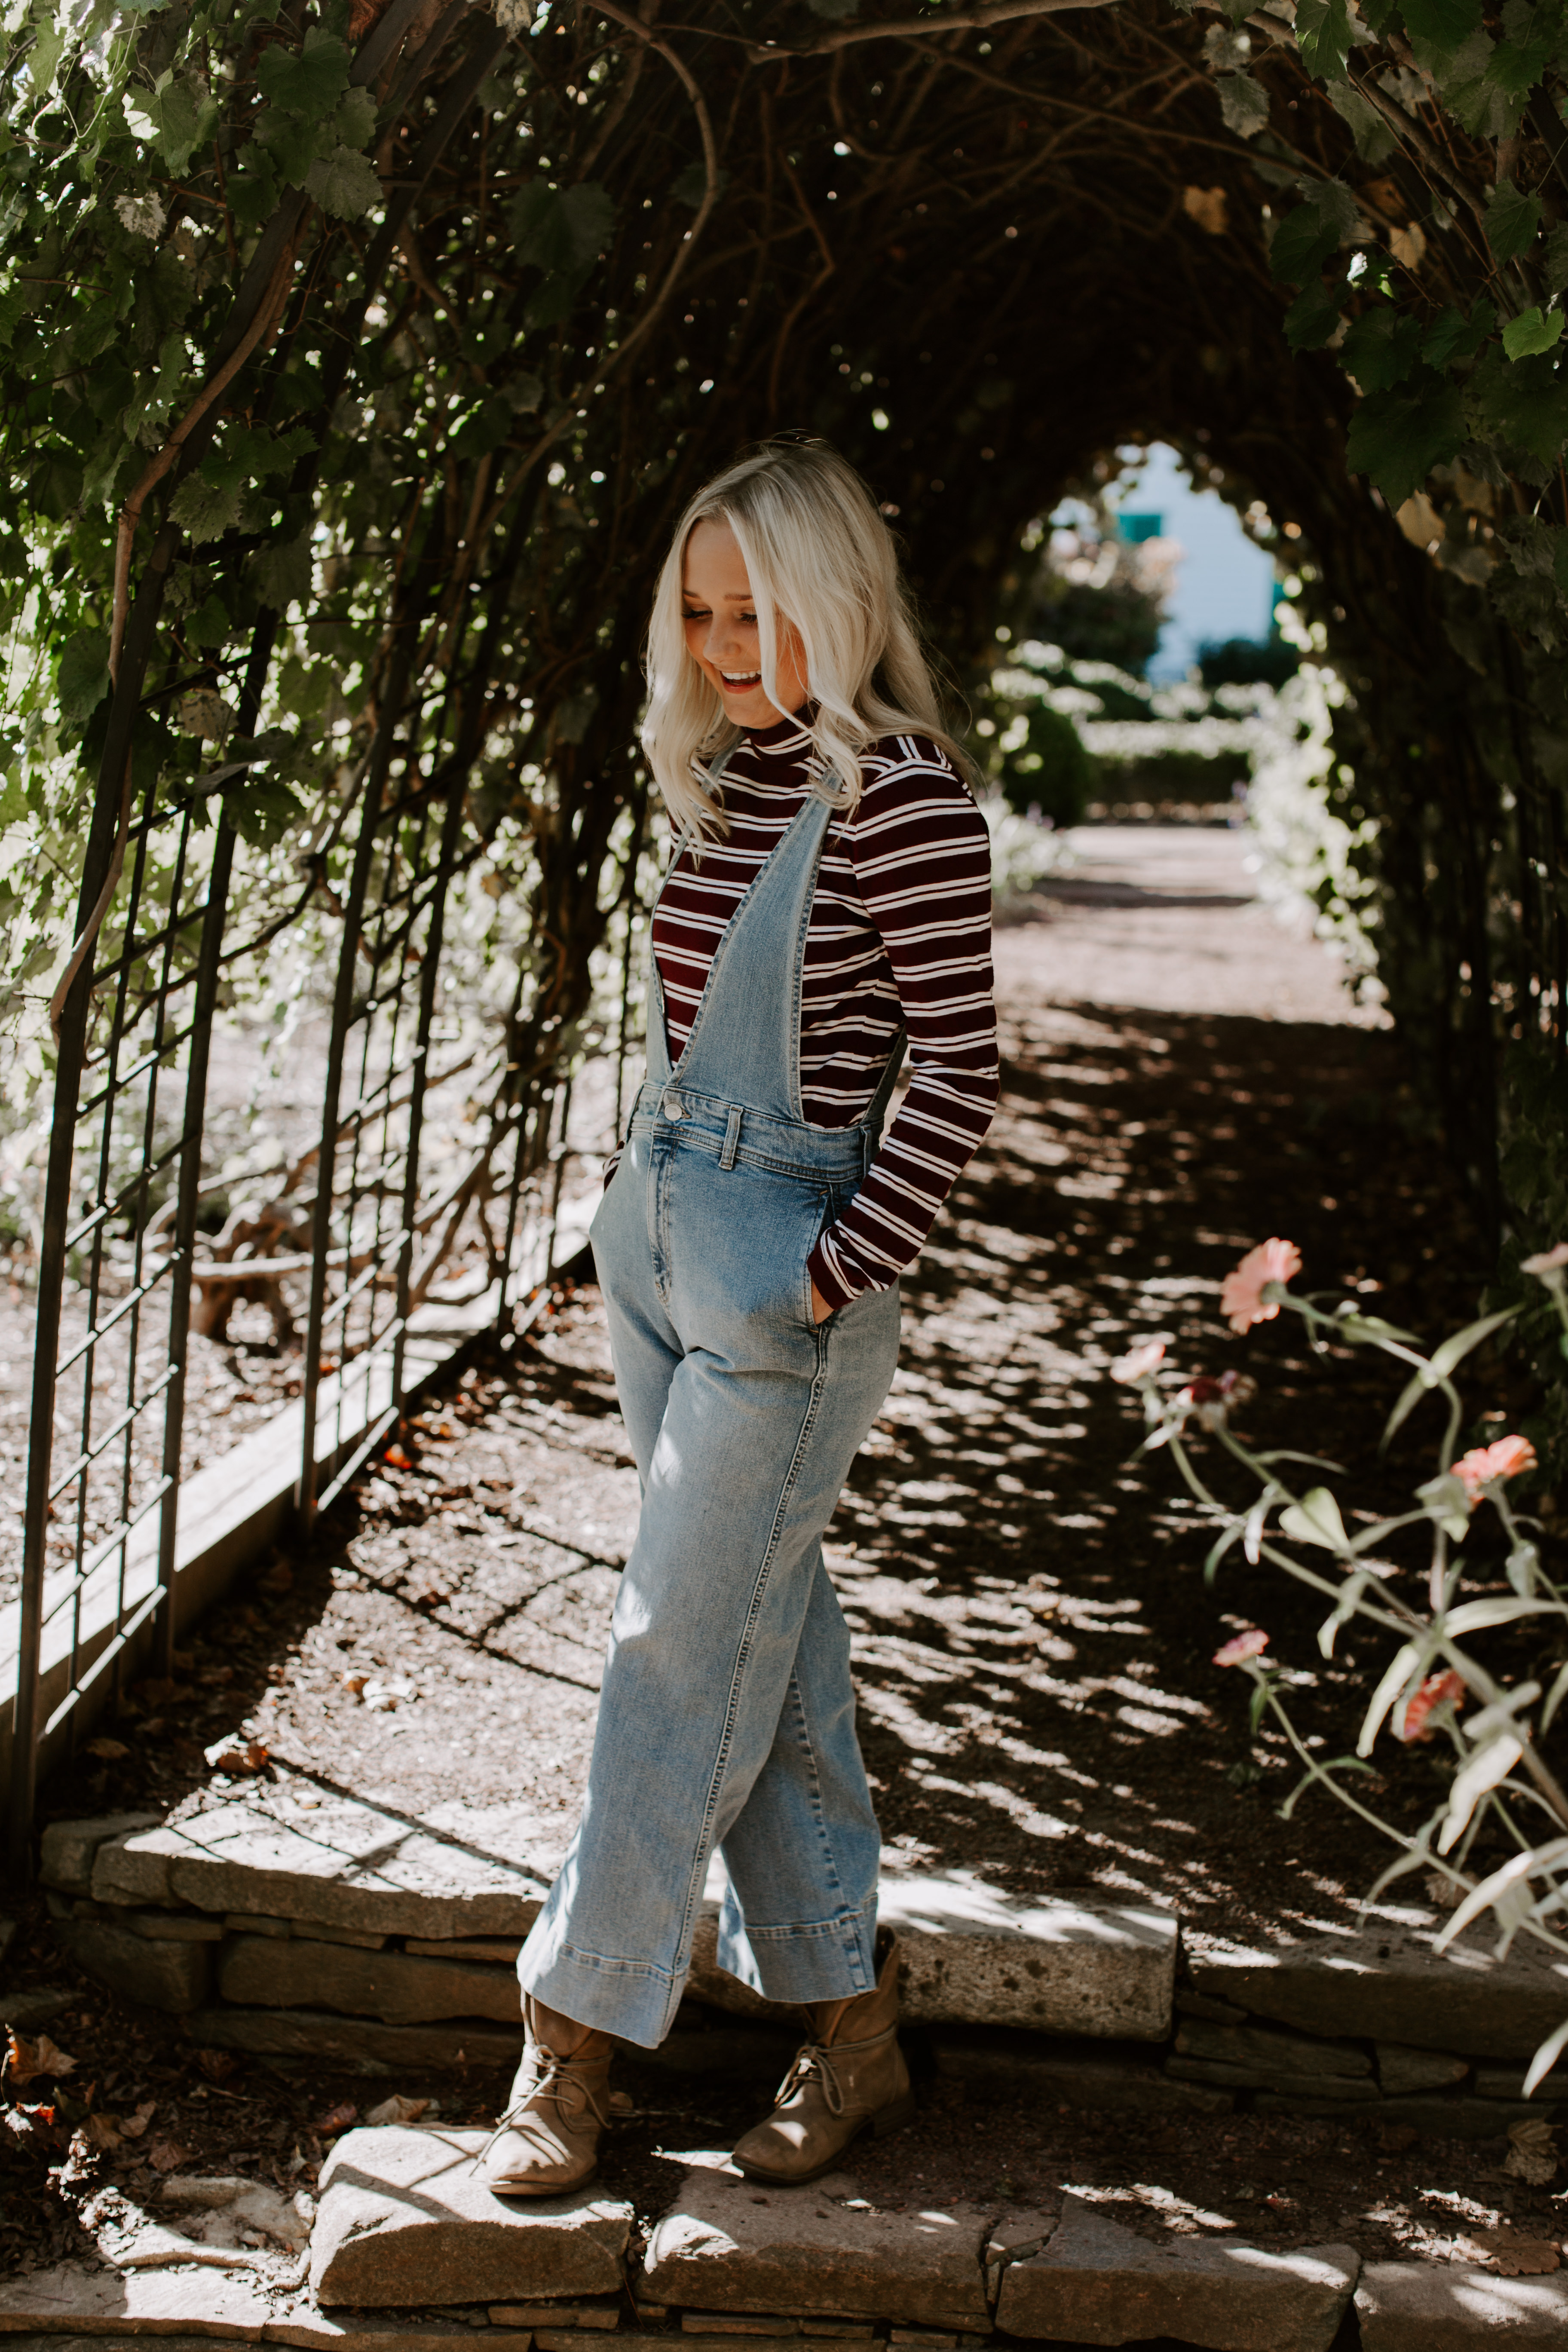 Ashley W. free people senior pictures leaf tunnel striped shirt boots candid model pose wedding elopement blonde hair outfit overalls